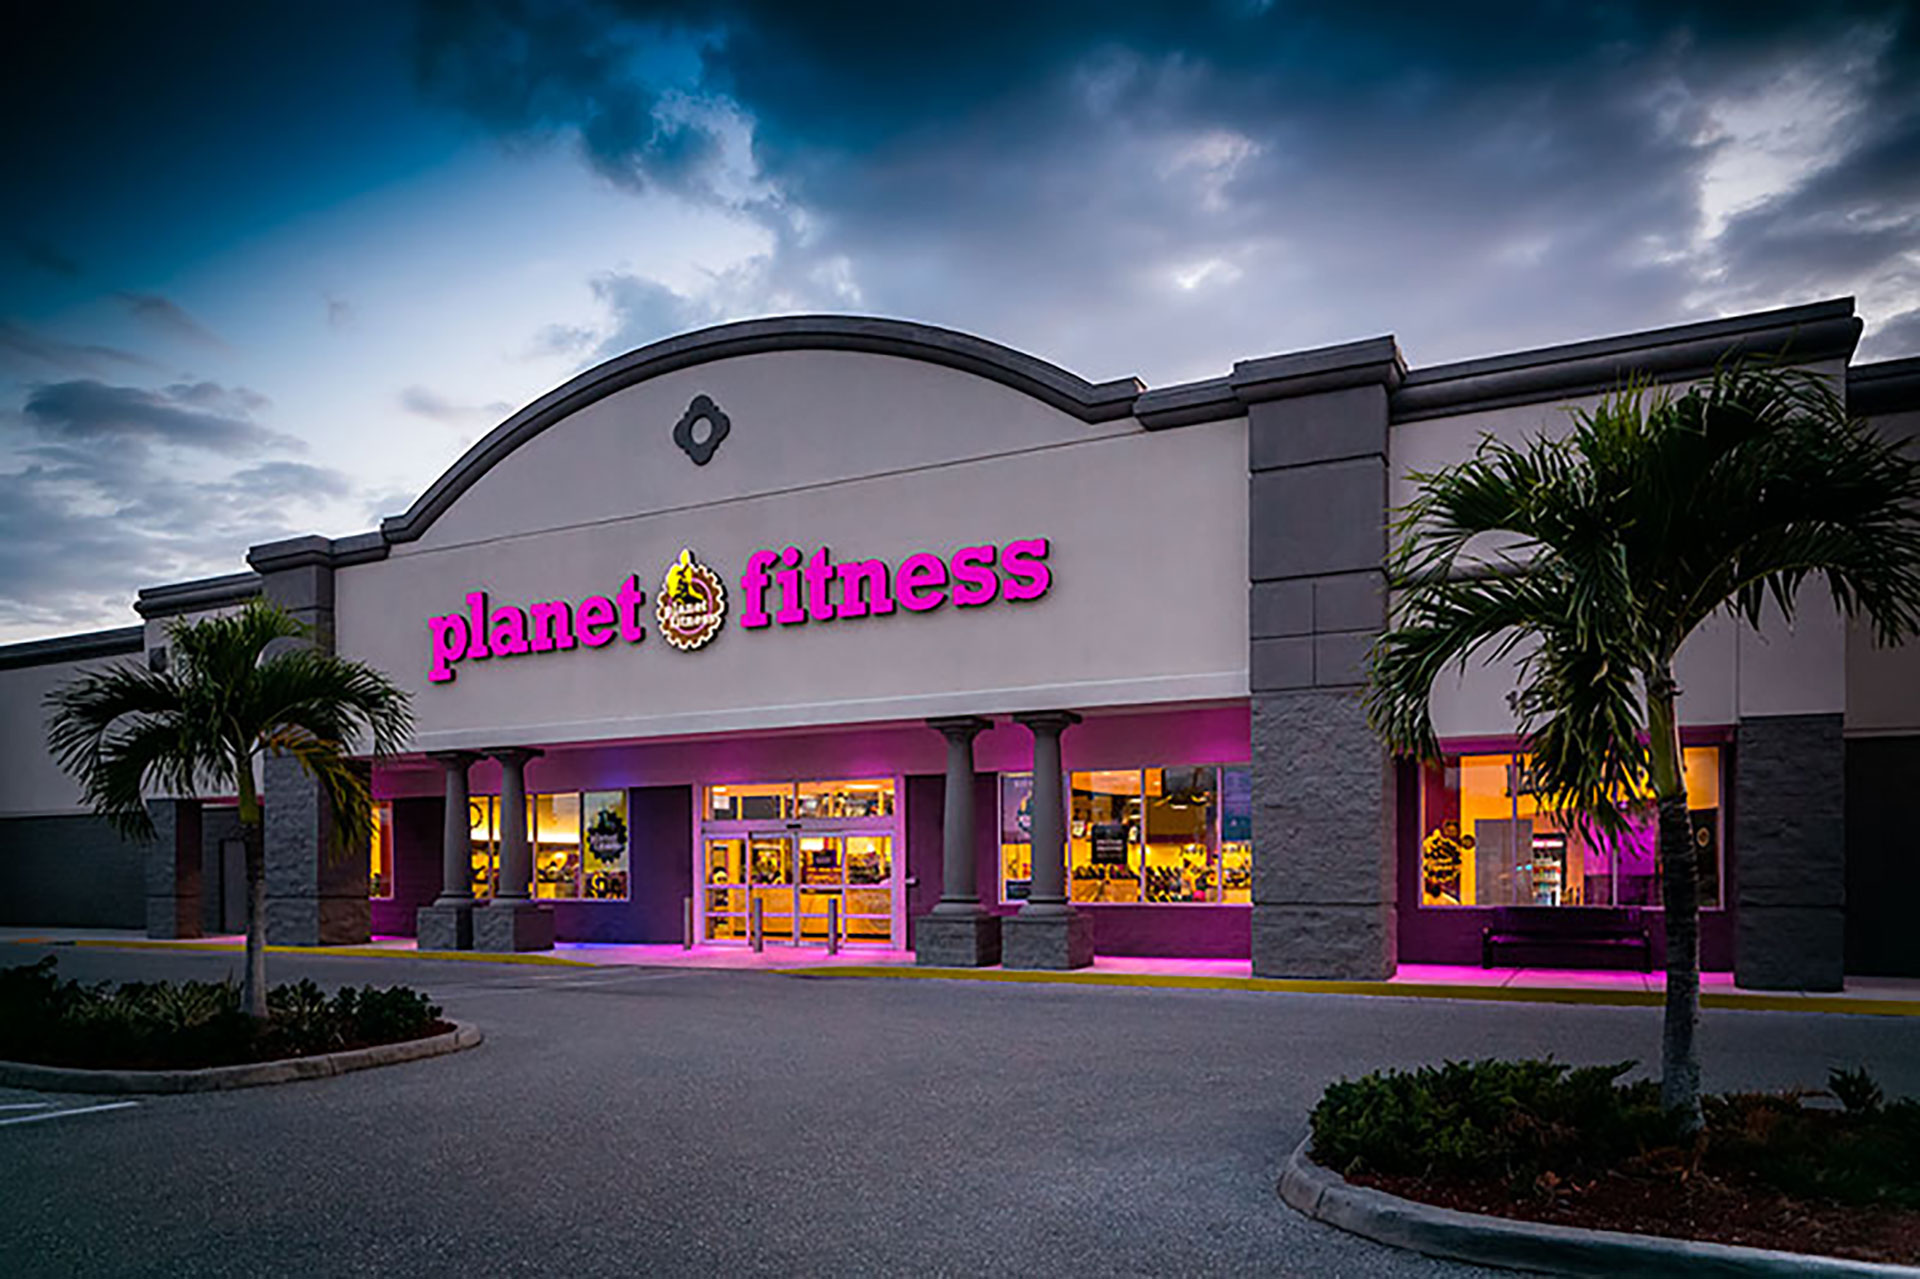 Planet-fitness-new-franchise-locations-scout